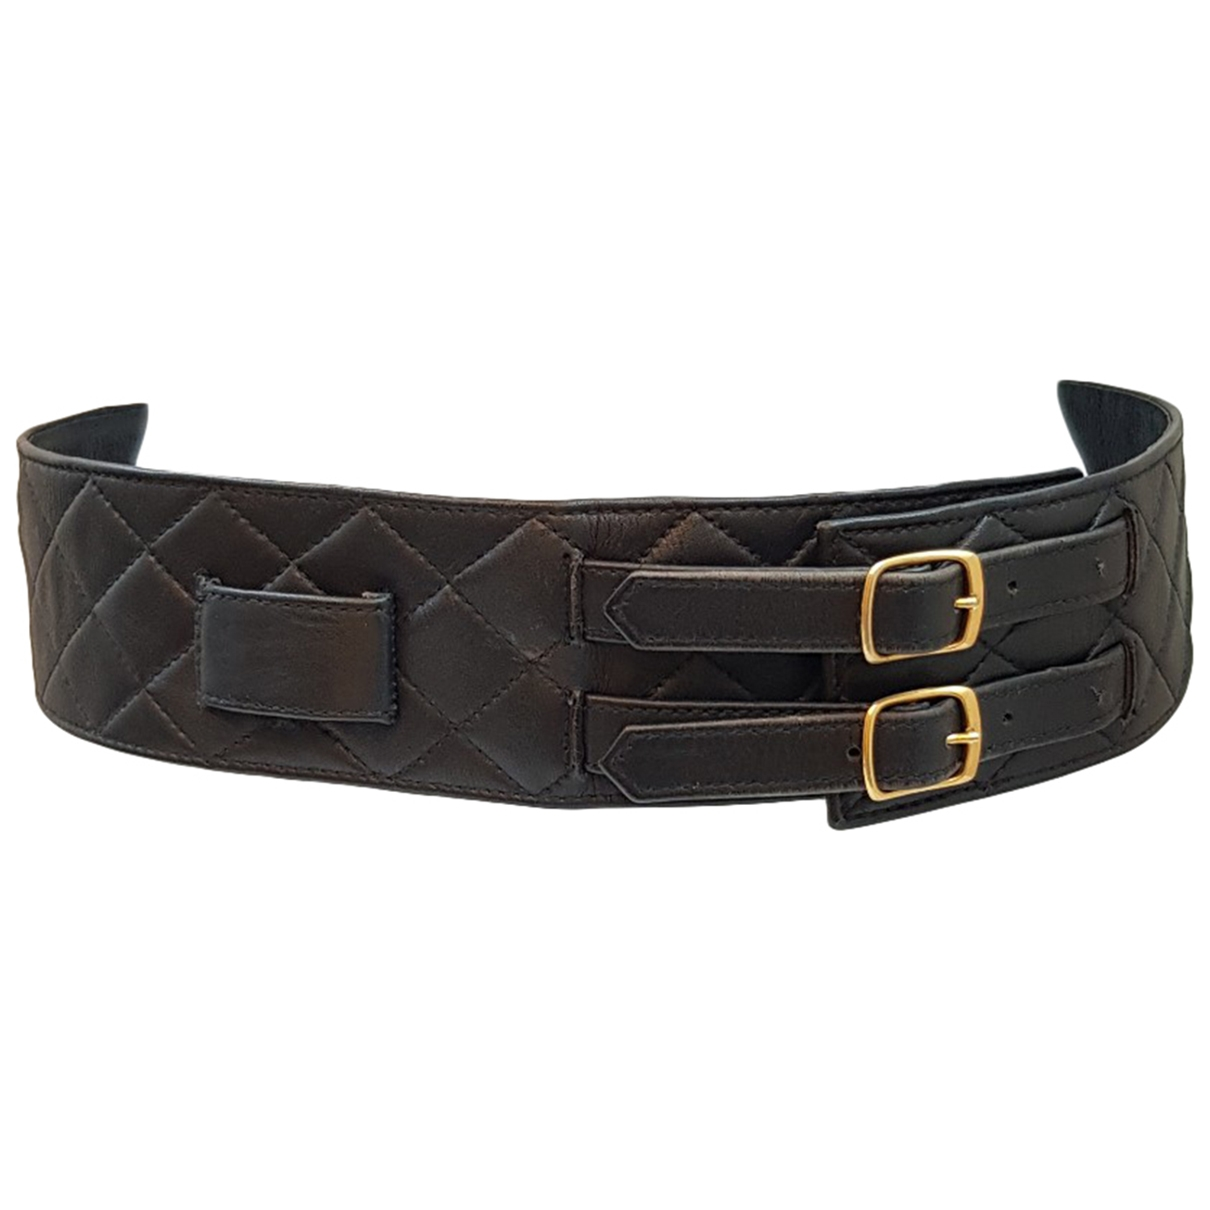 Chanel \N Black Leather belt for Women 80 cm